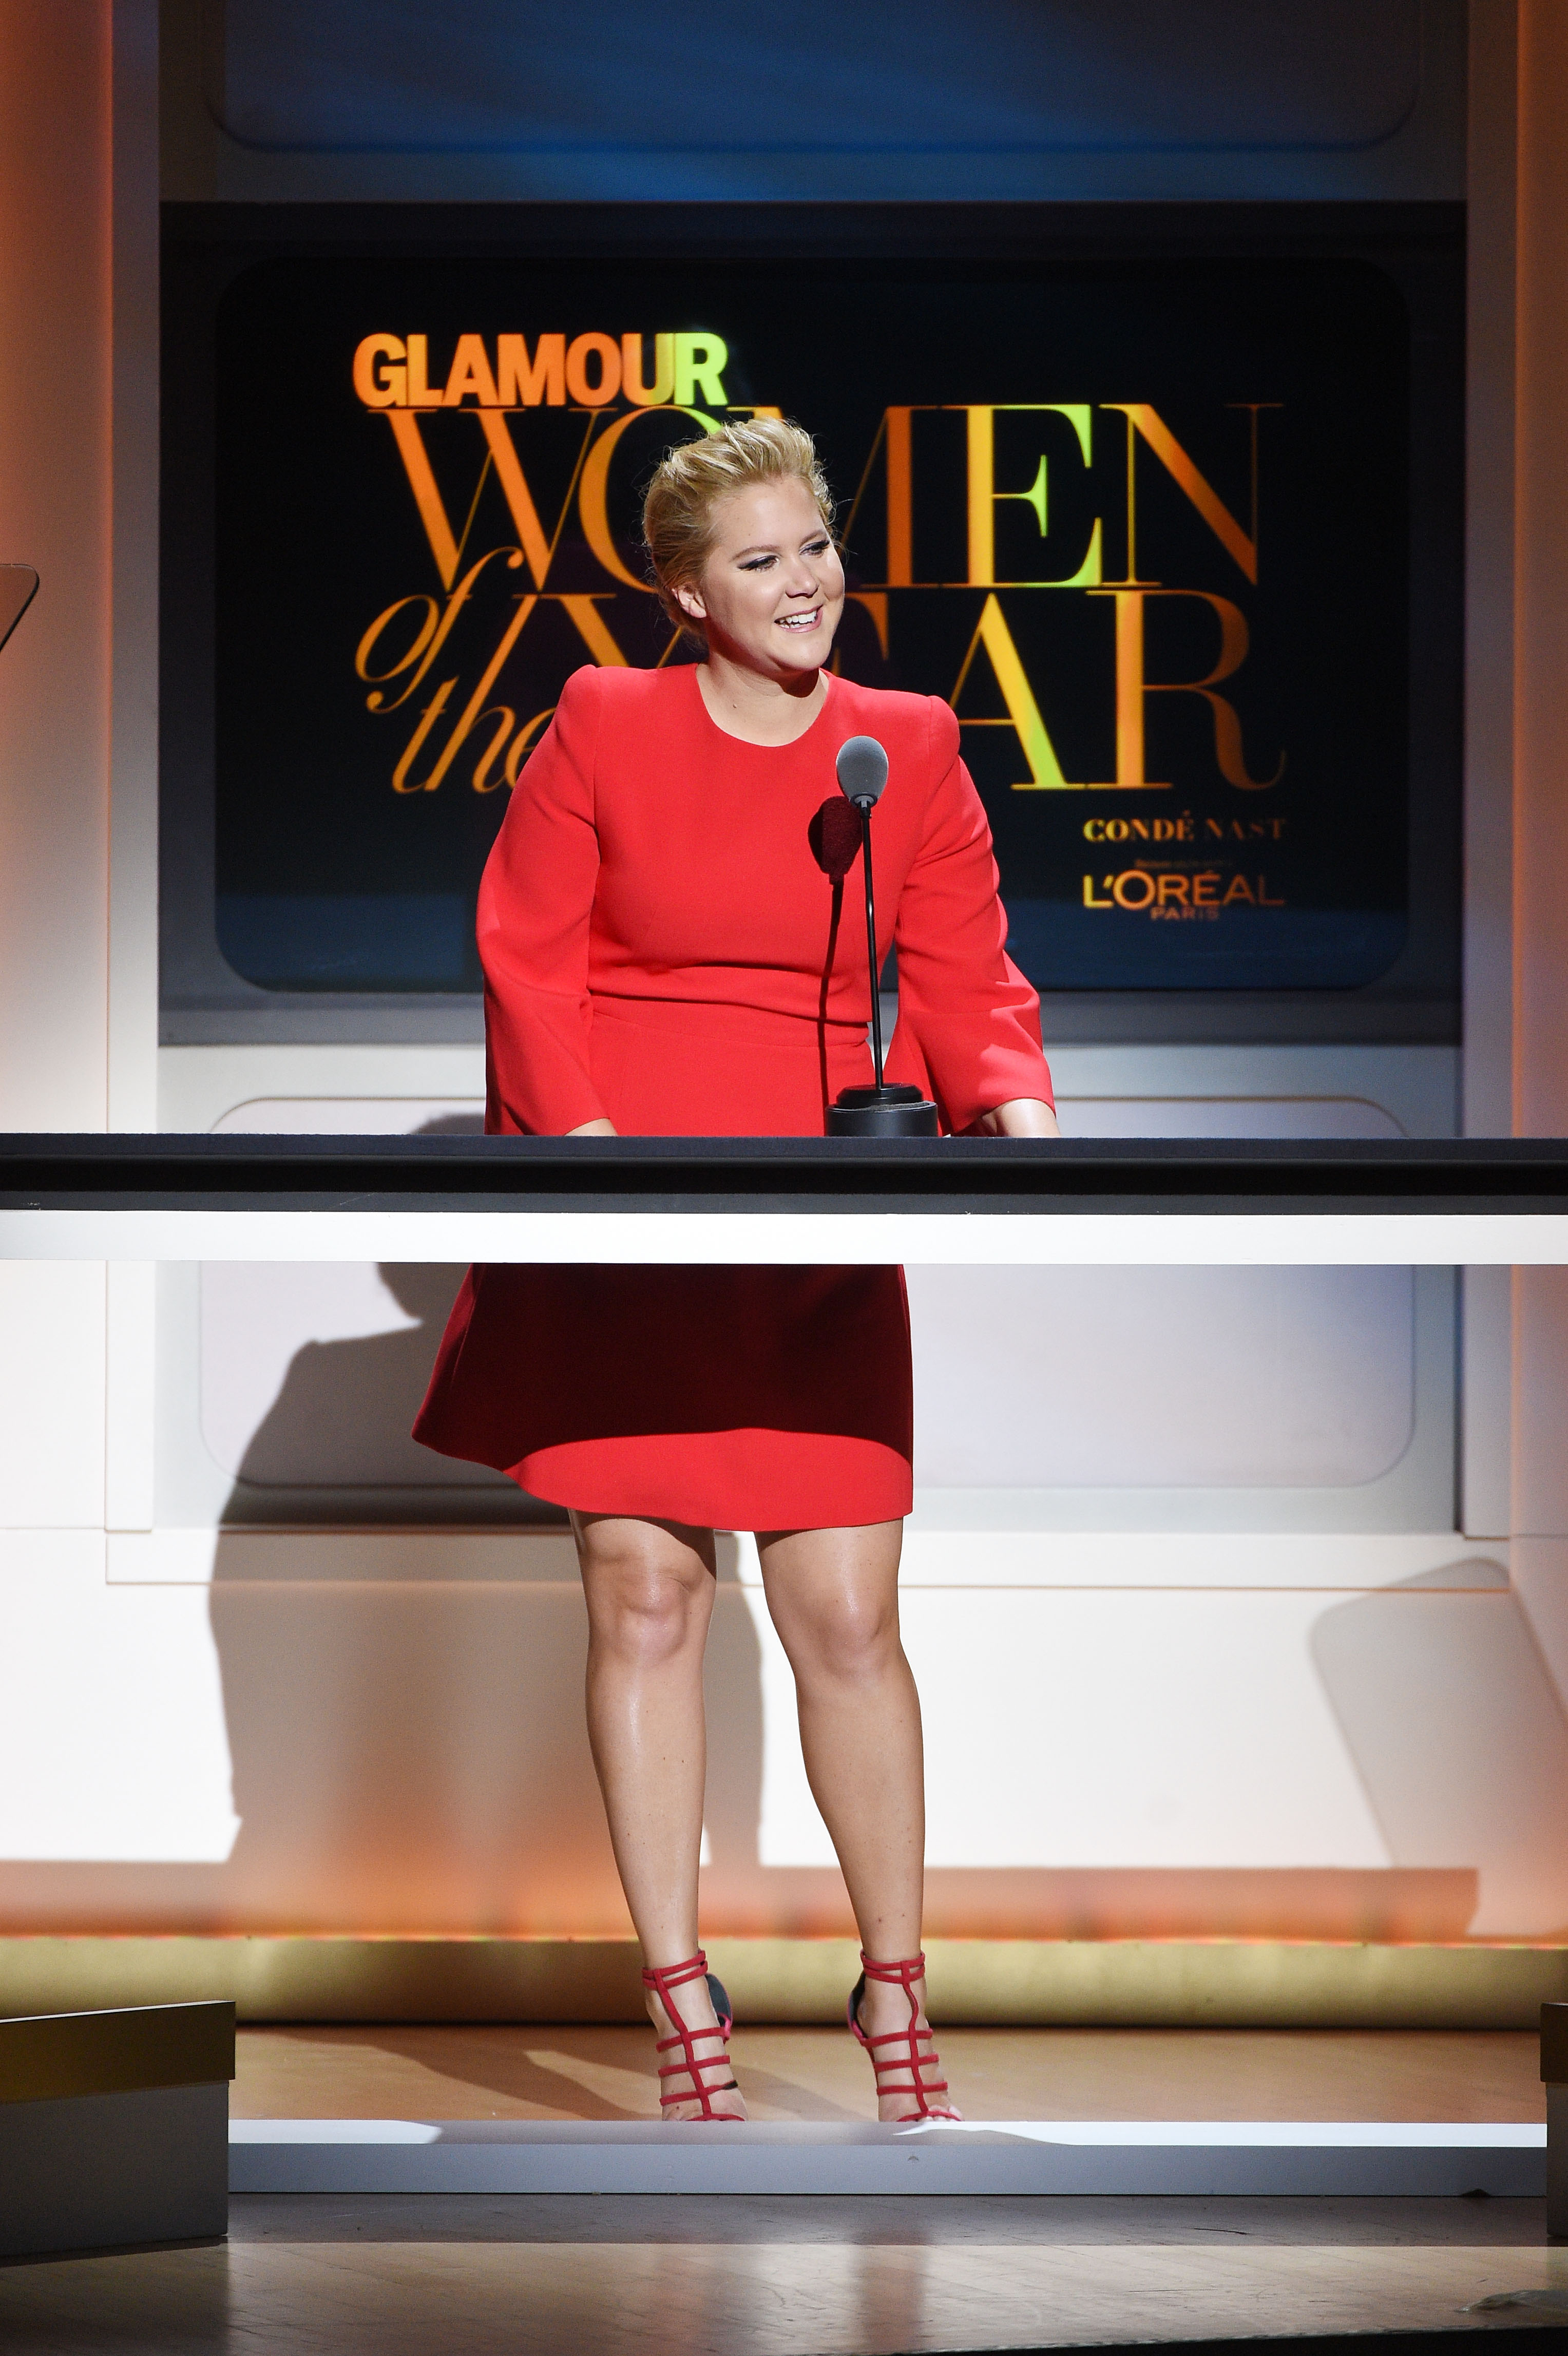 NEW YORK, NY - NOVEMBER 09: Comedian Amy Schumer speaks onstage at the 2015 Glamour Women of the Year Awards on November 9, 2015 in New York City. (Photo by Larry Busacca/Getty Images for Glamour) *** Local Caption *** Amy Schumer